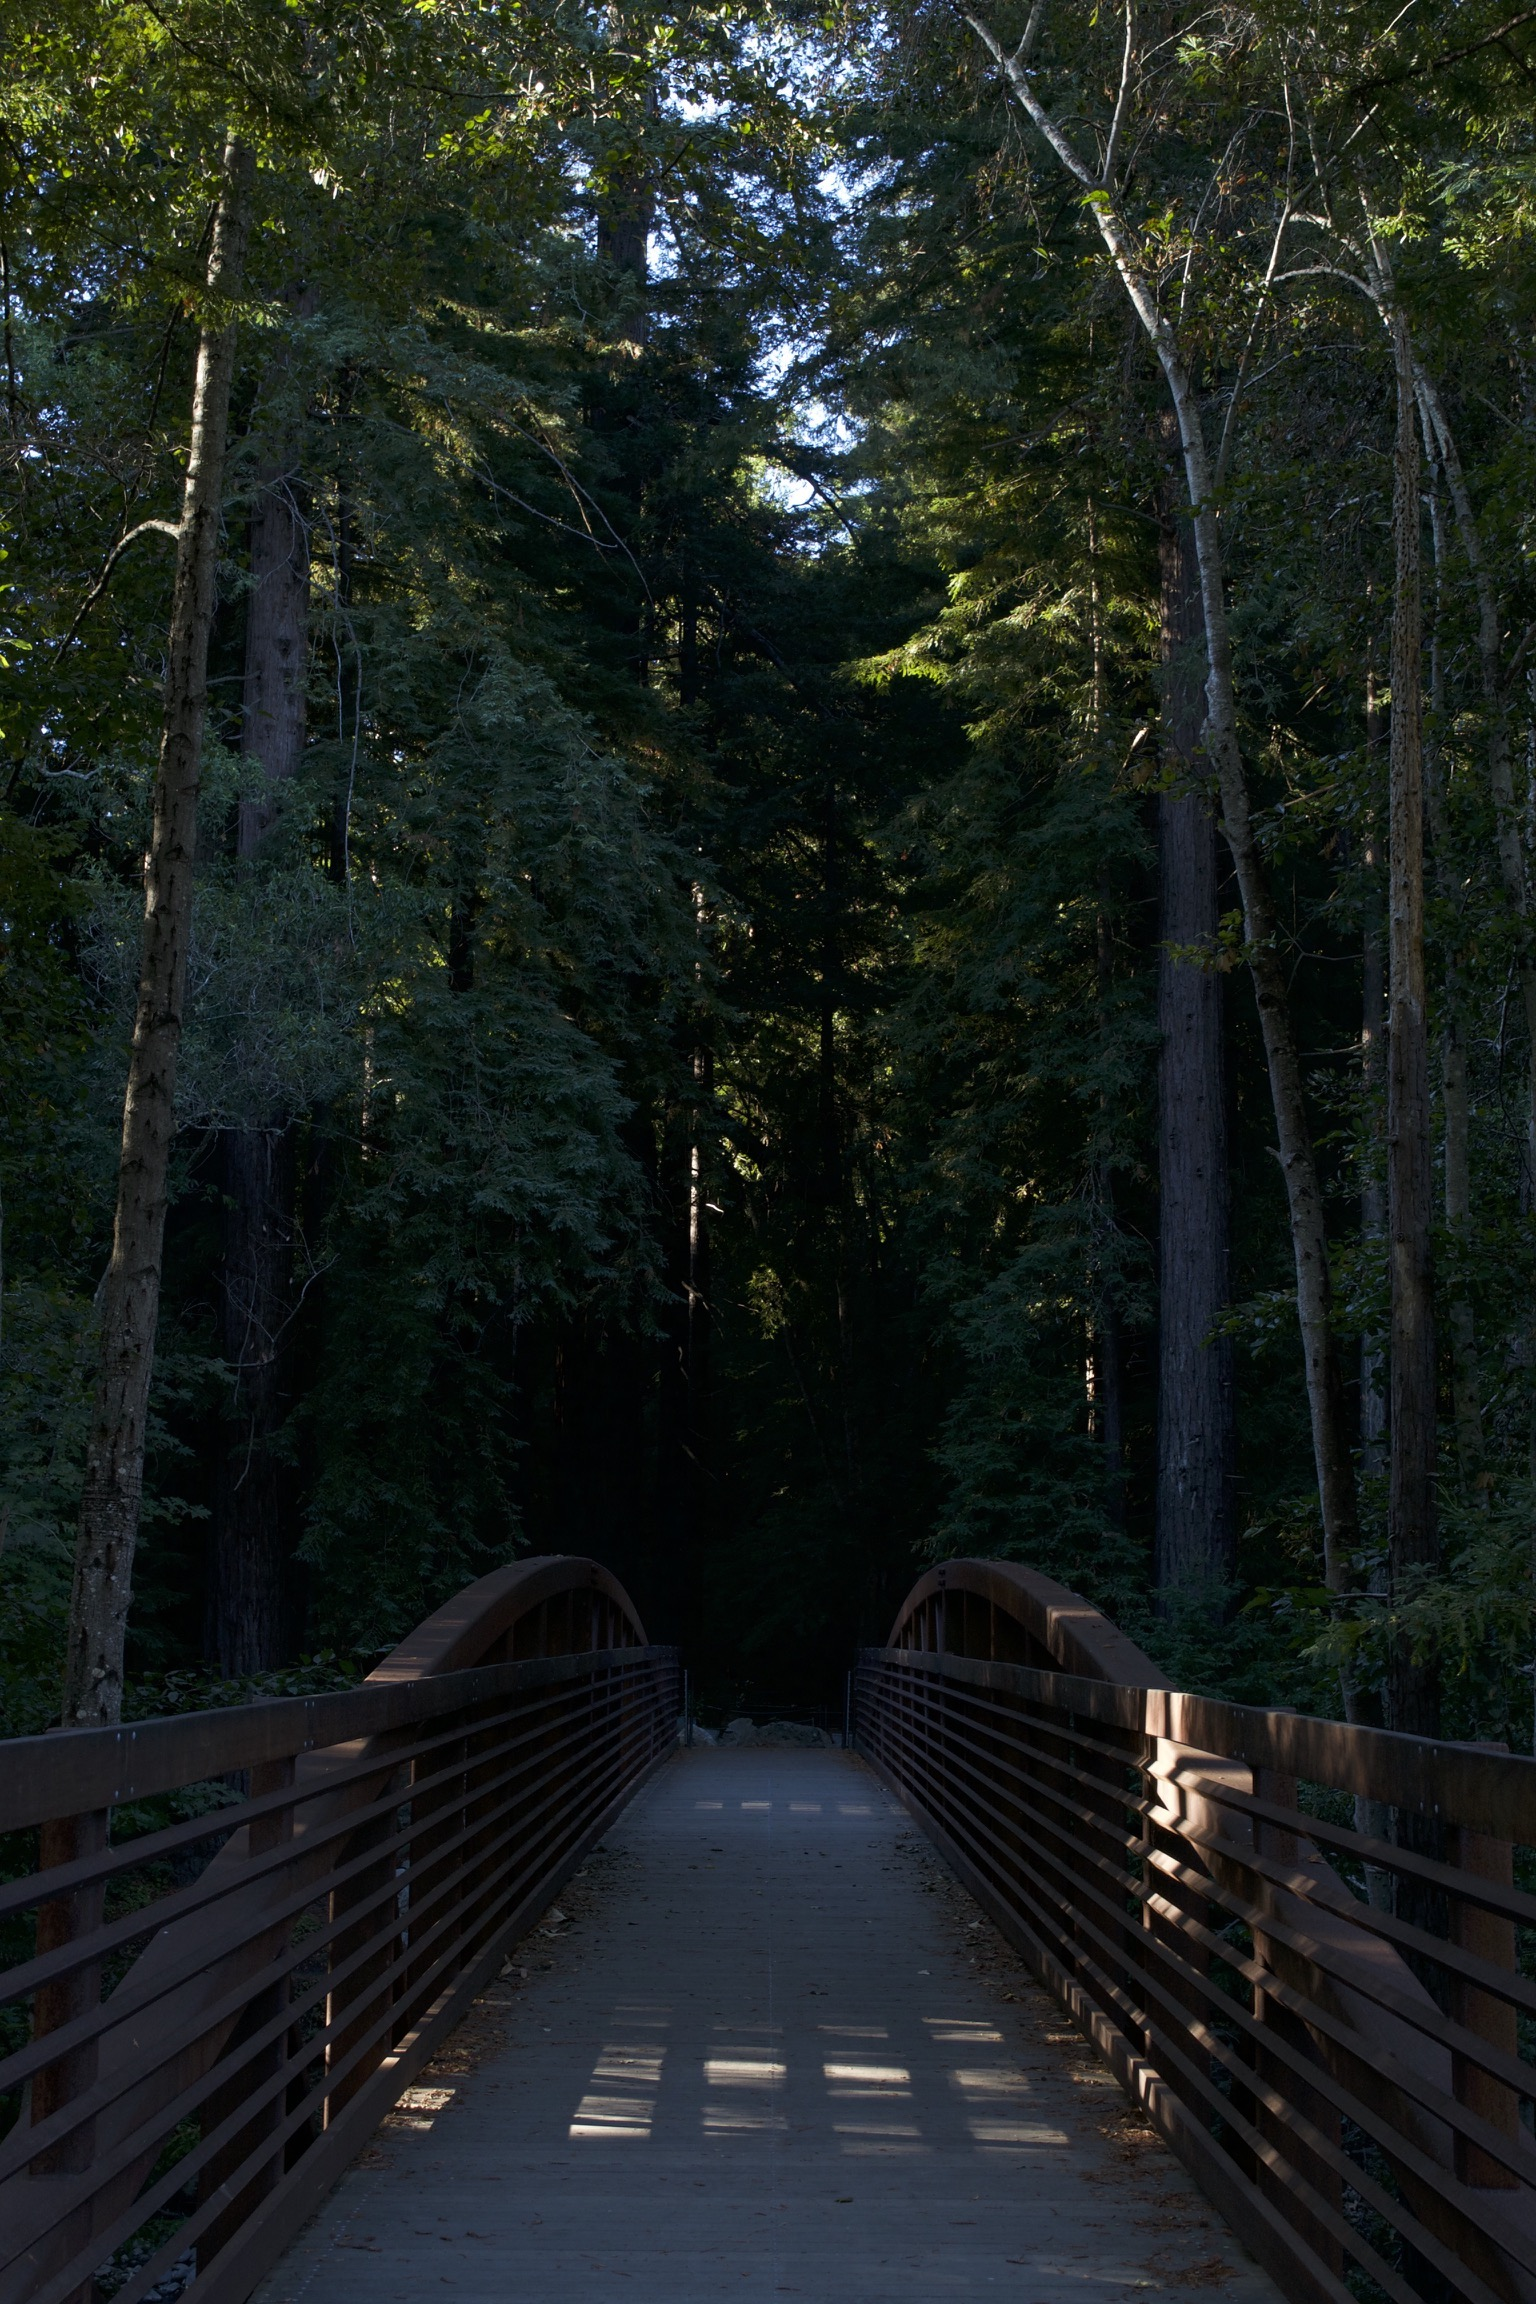 A footbridge leads into a dark forest.